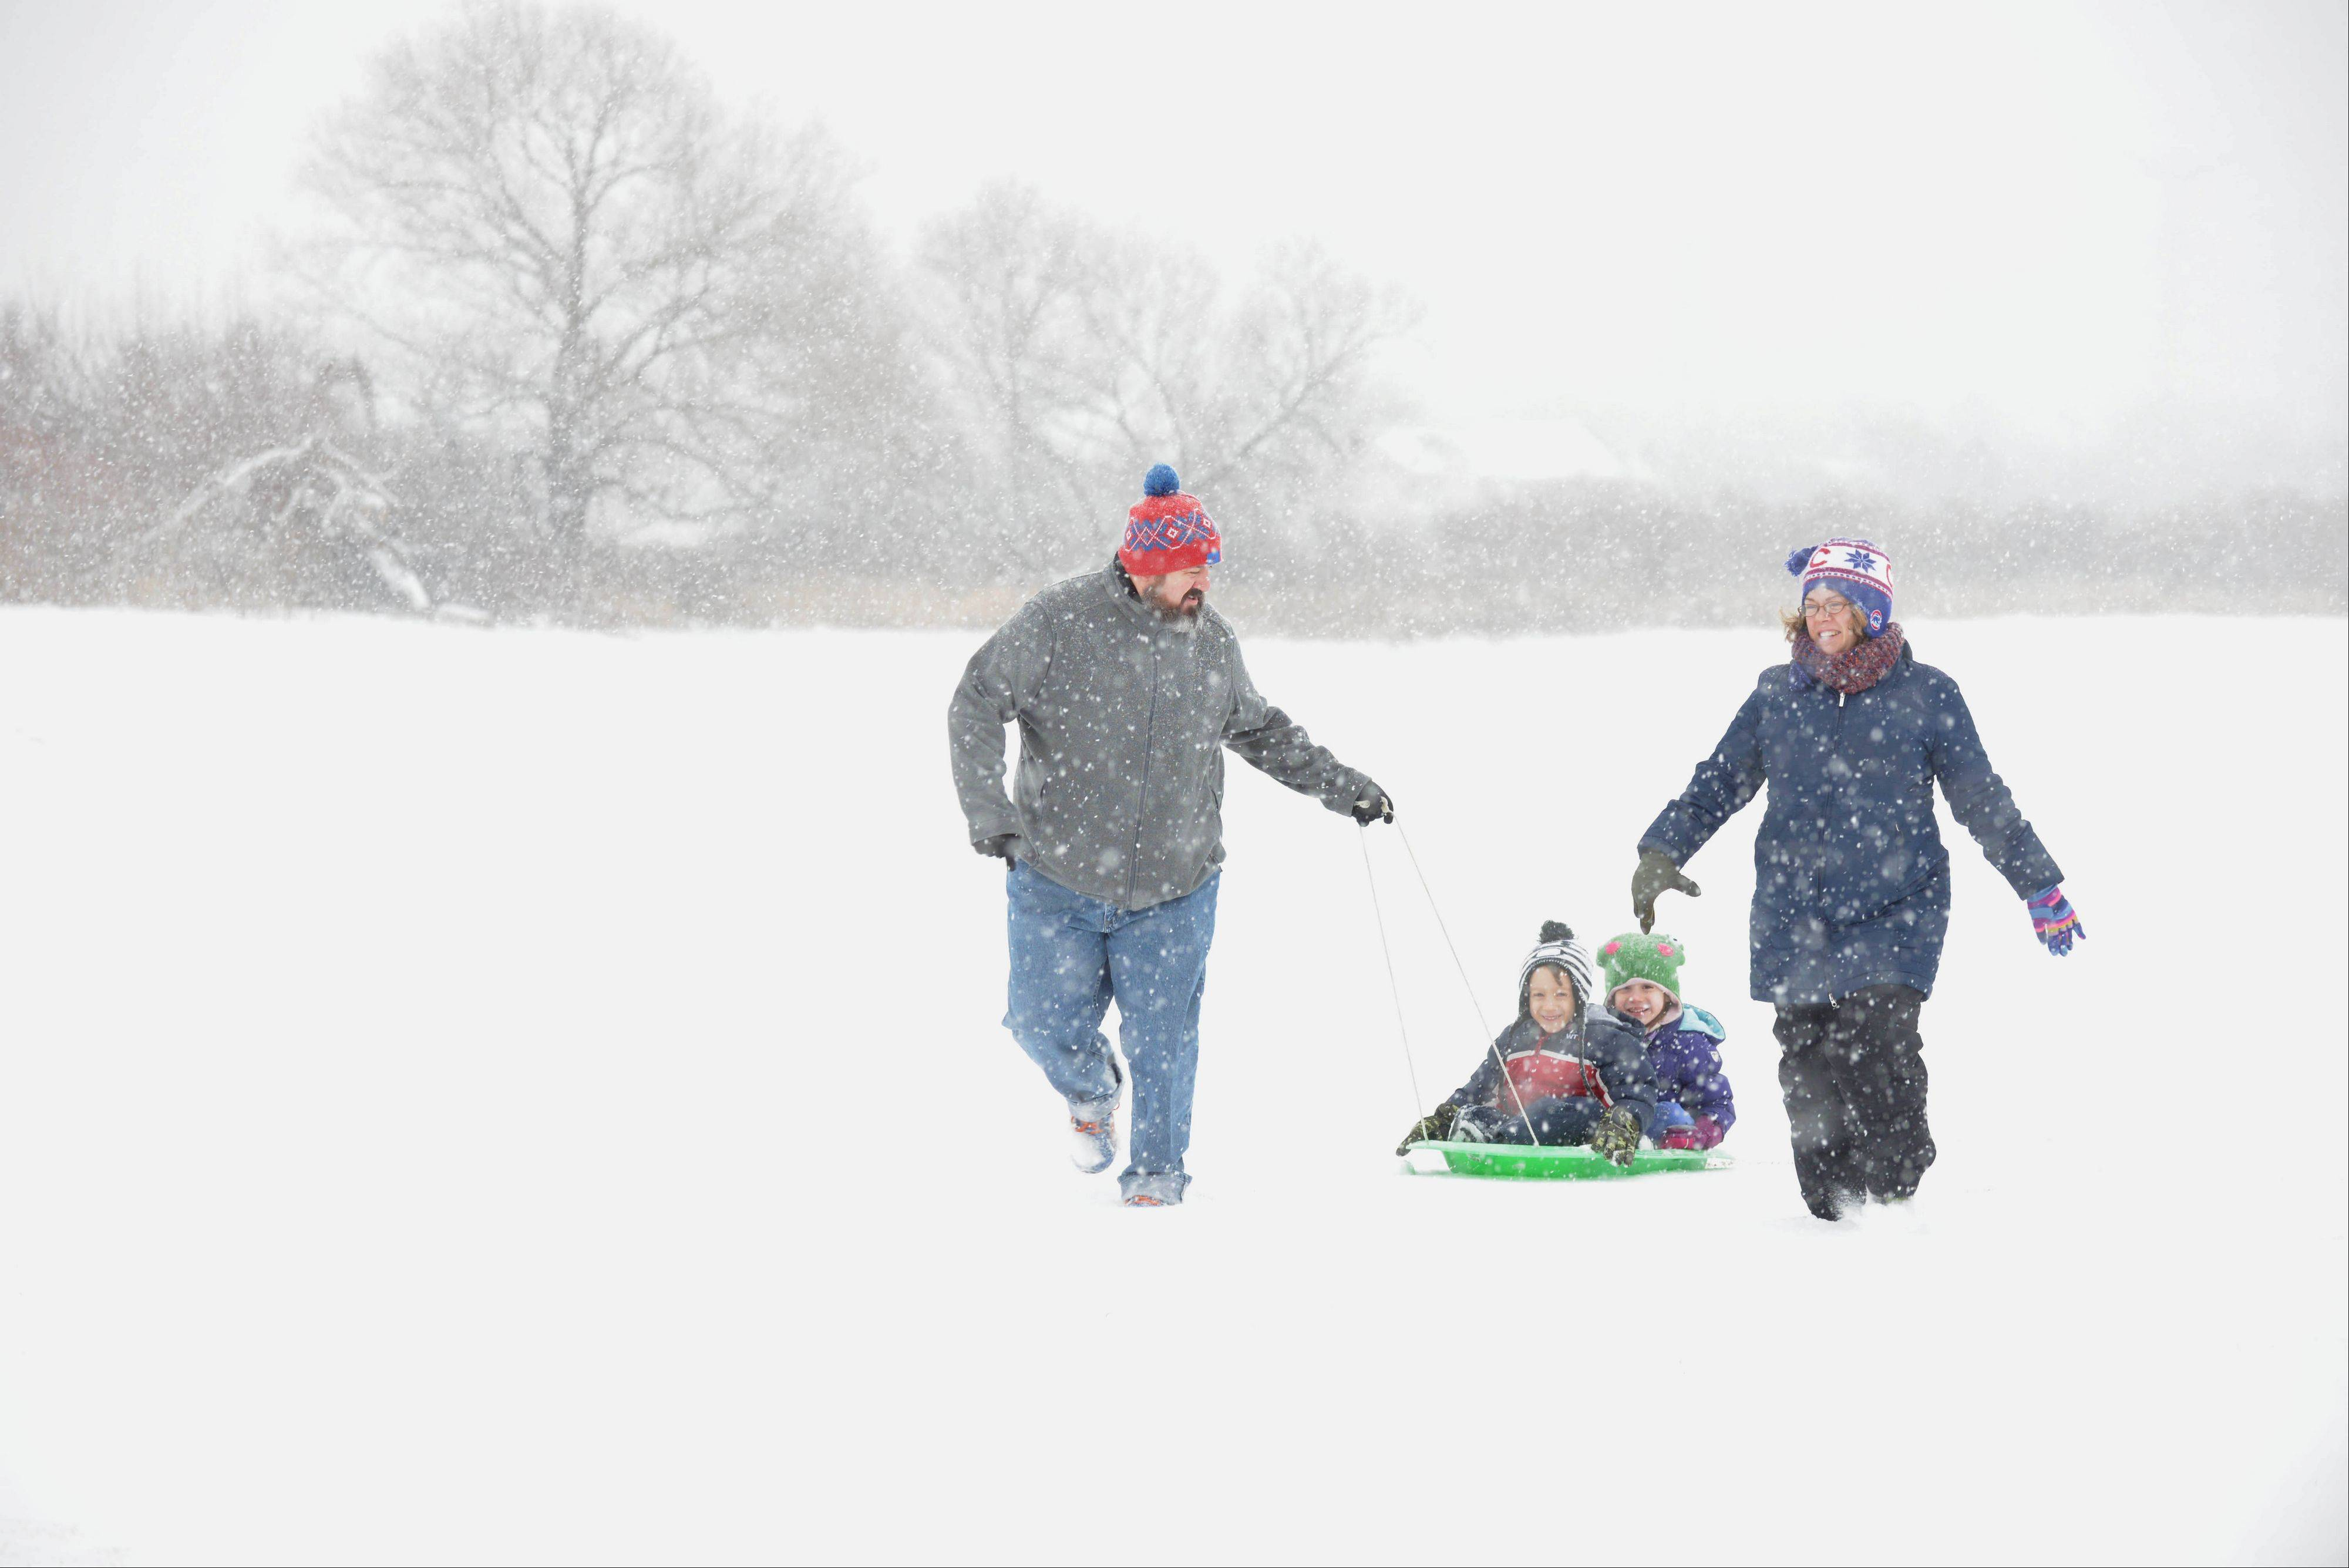 Kevin and Eileen Woosley, of Aurora, pull their children, Martin, 6, and Molly, 6, through a snow-covered field in Aurora Wednesday.